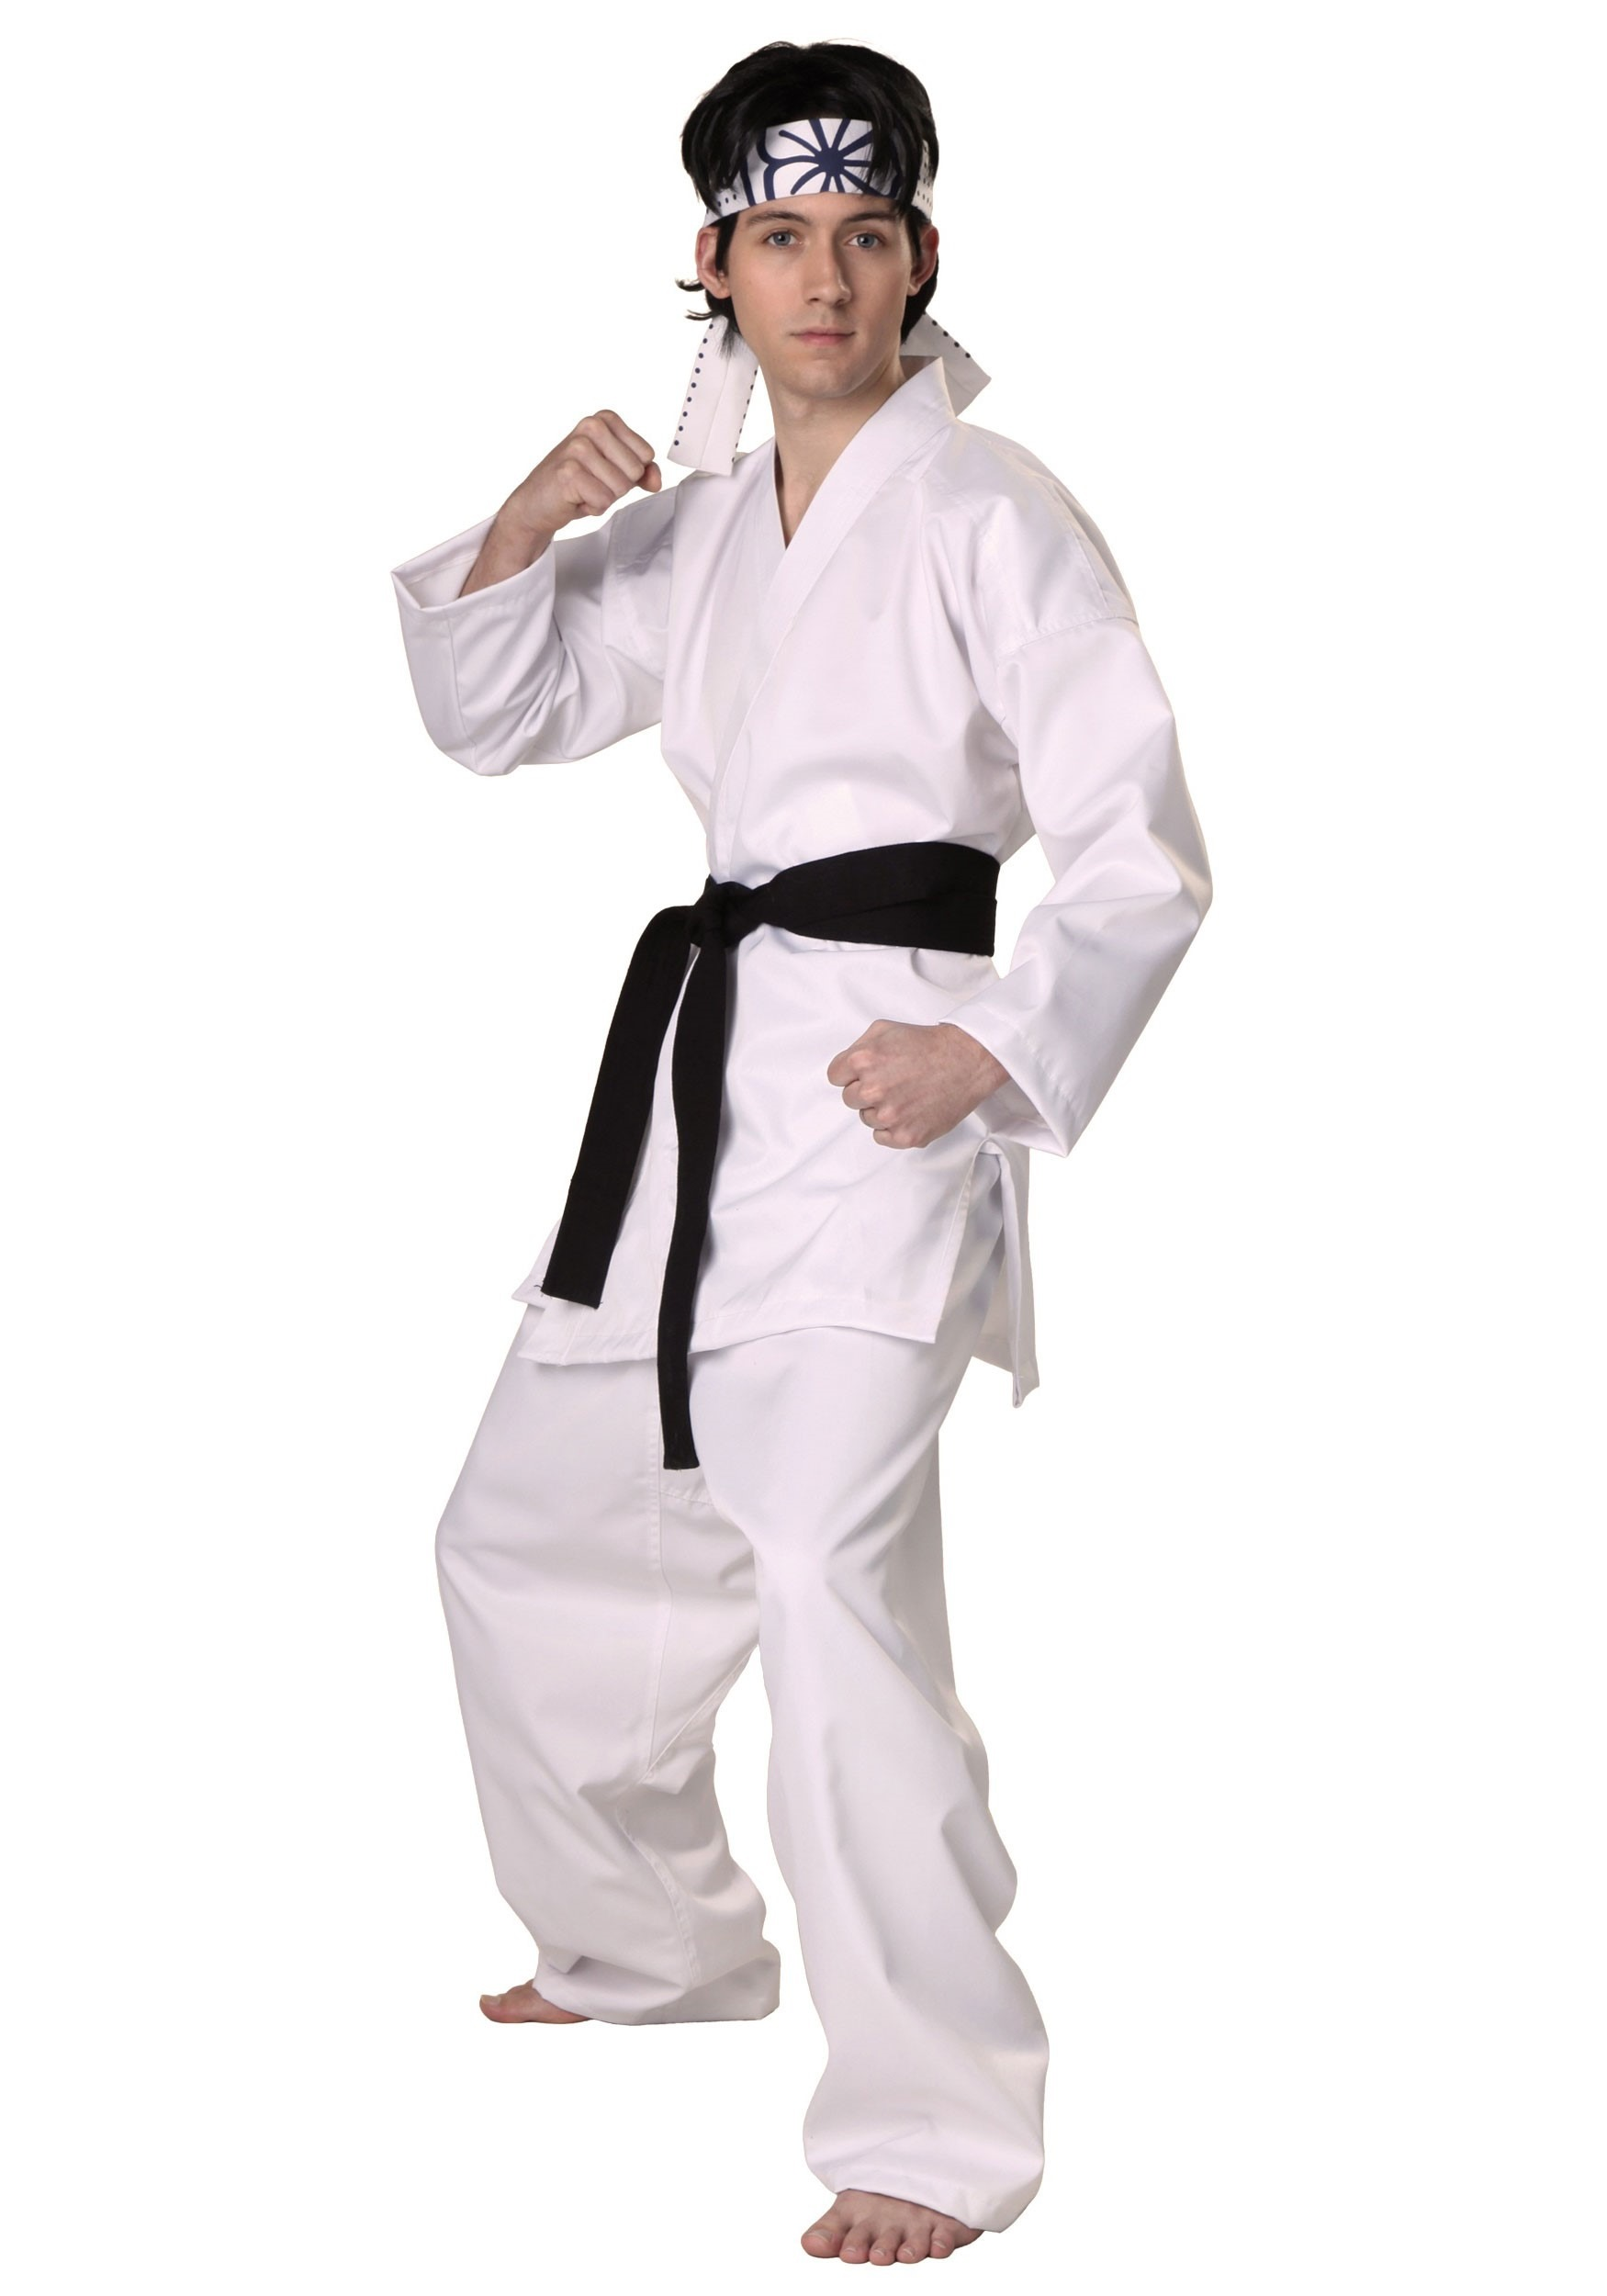 Authentic Karate Daniel San Costume For Adults